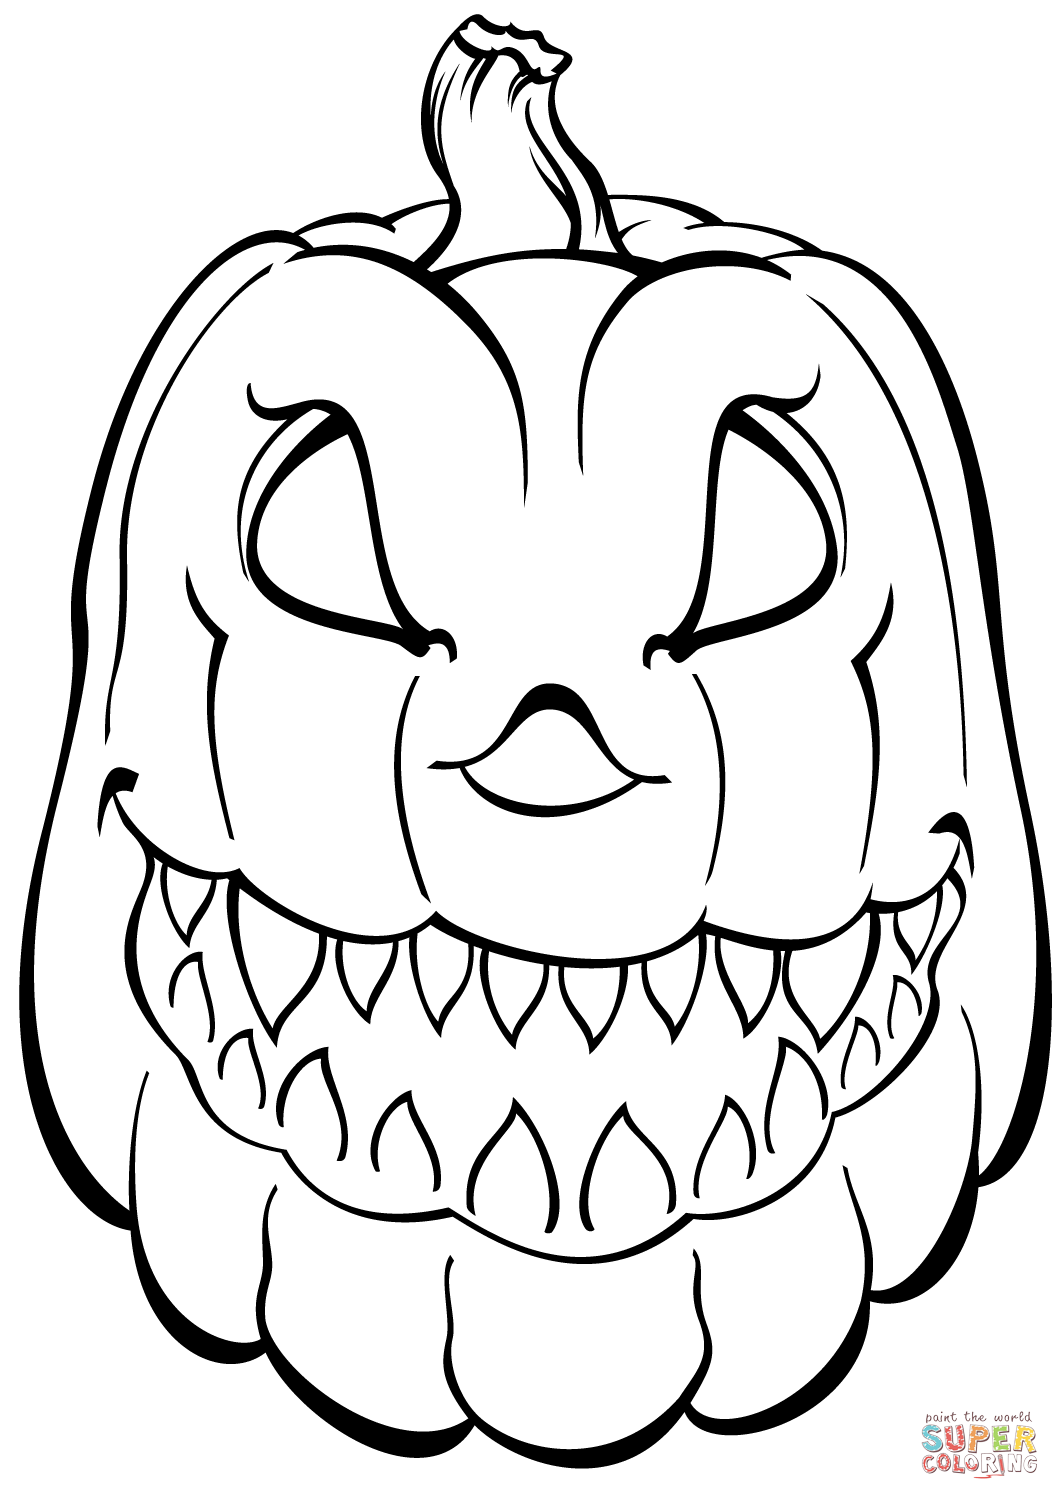 coloring pages of pumpkins free adult coloring pages pumpkin delight free pretty of coloring pumpkins pages